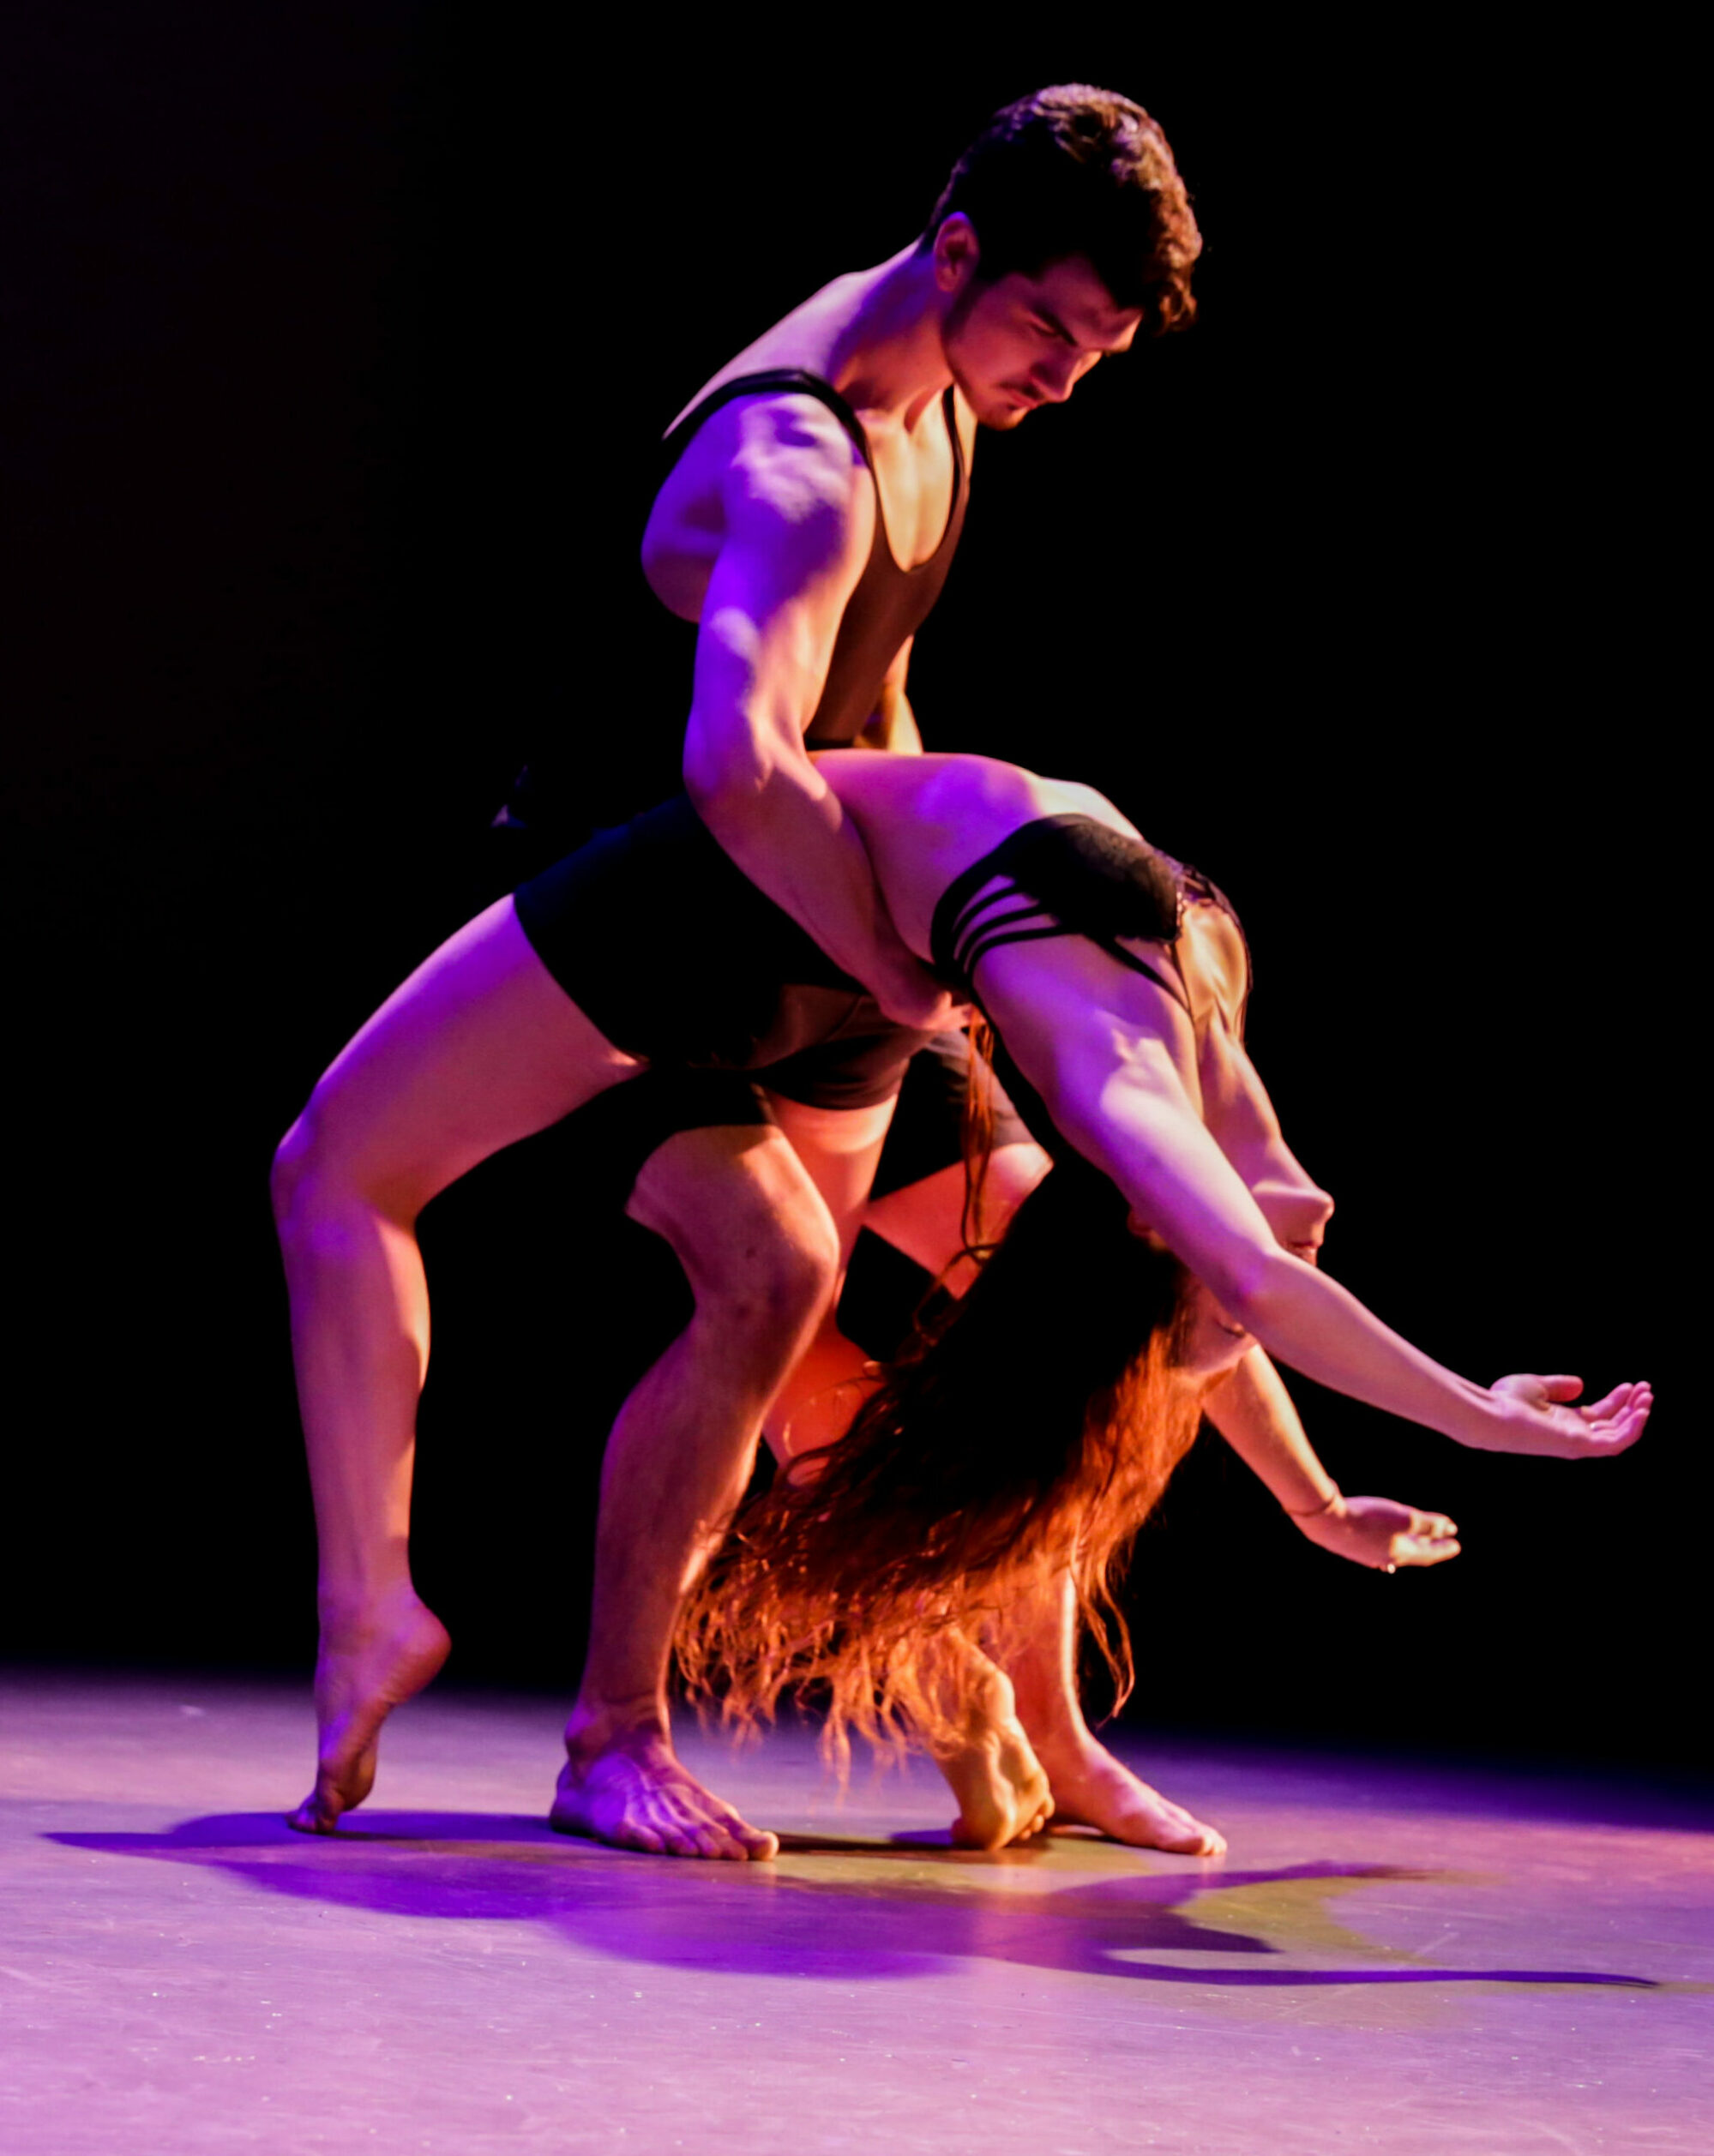 Two dancers performing a partnering routine during a live performance. They are wearing black costumes with purple light.